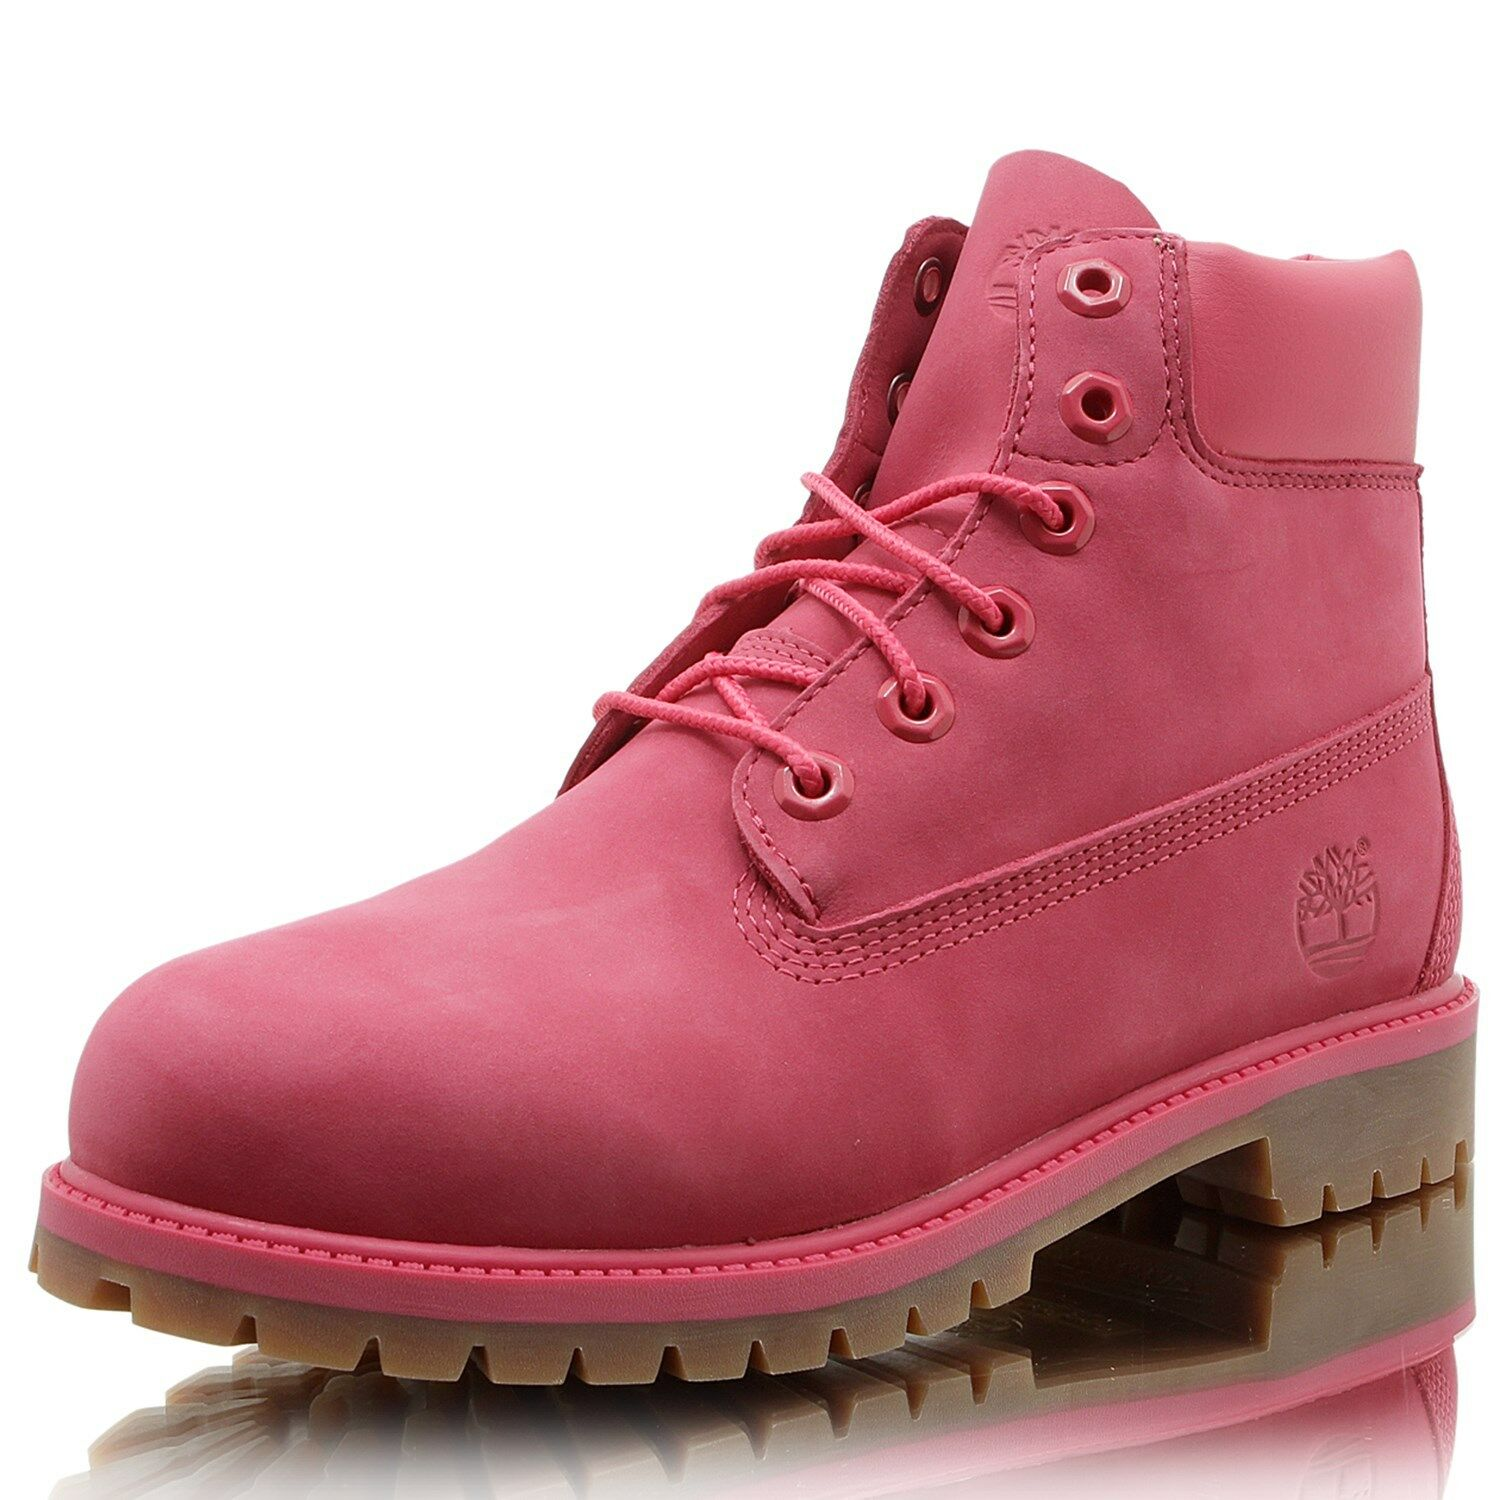 TIMBERLAND 6IN Prem WP Stiefel Stiefel Stiefel Rosa rot    64a0f1